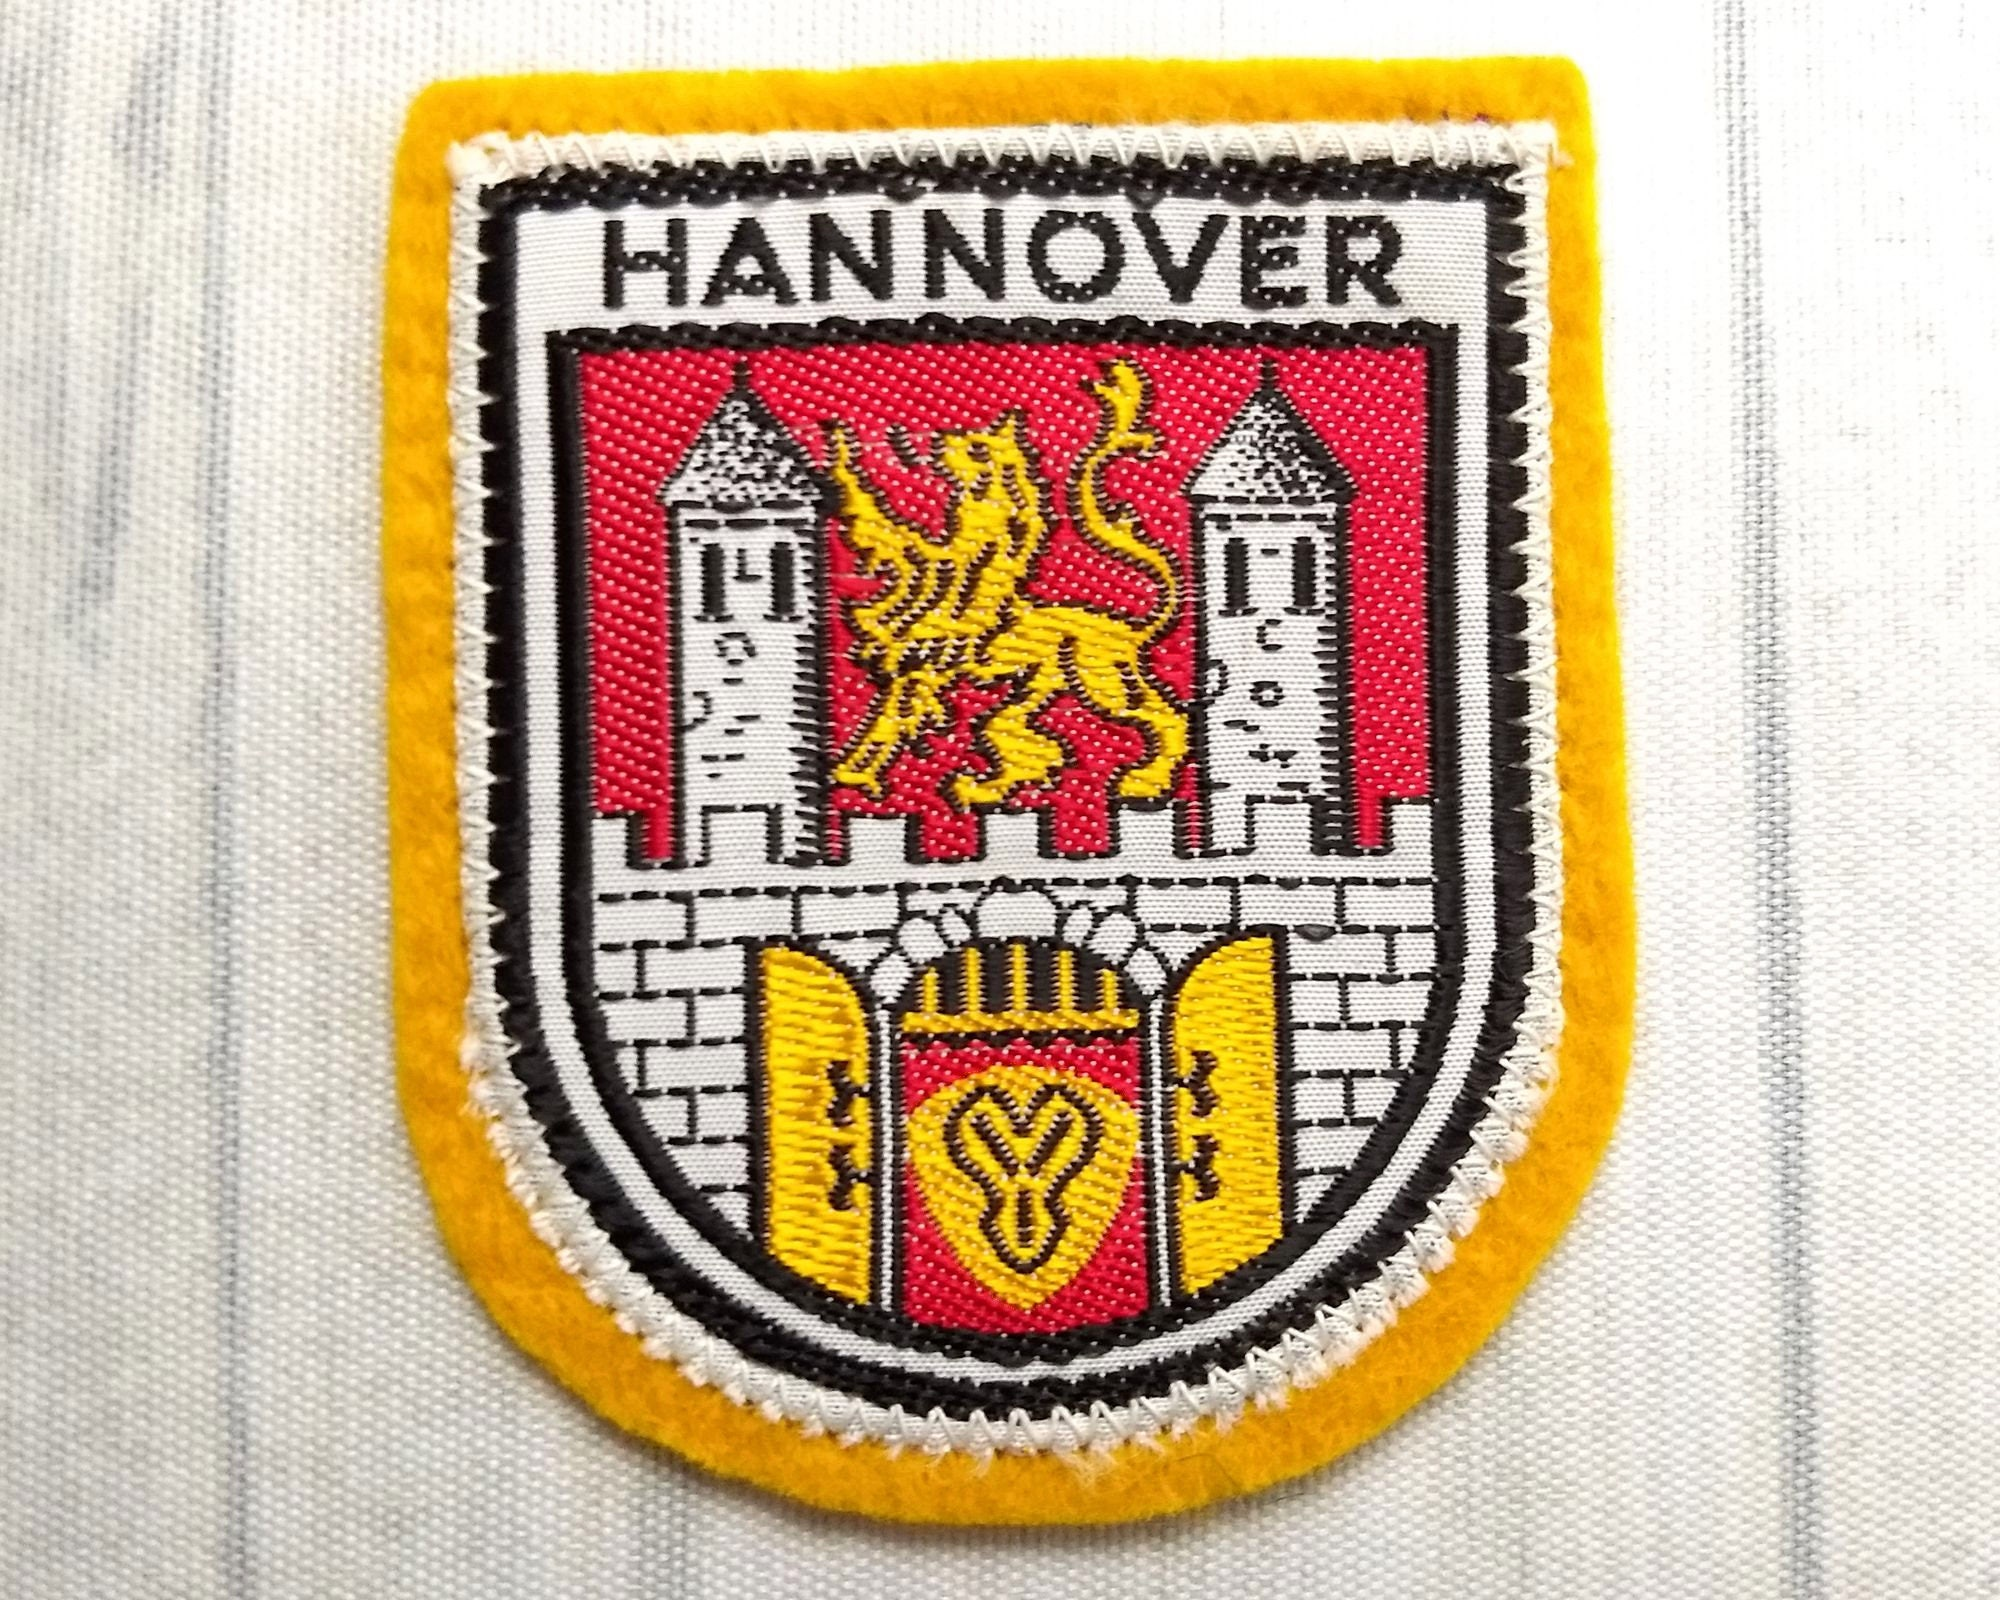 Vintage hannover patch 2 6 woven on yellow felt lower for Hannover souvenirs